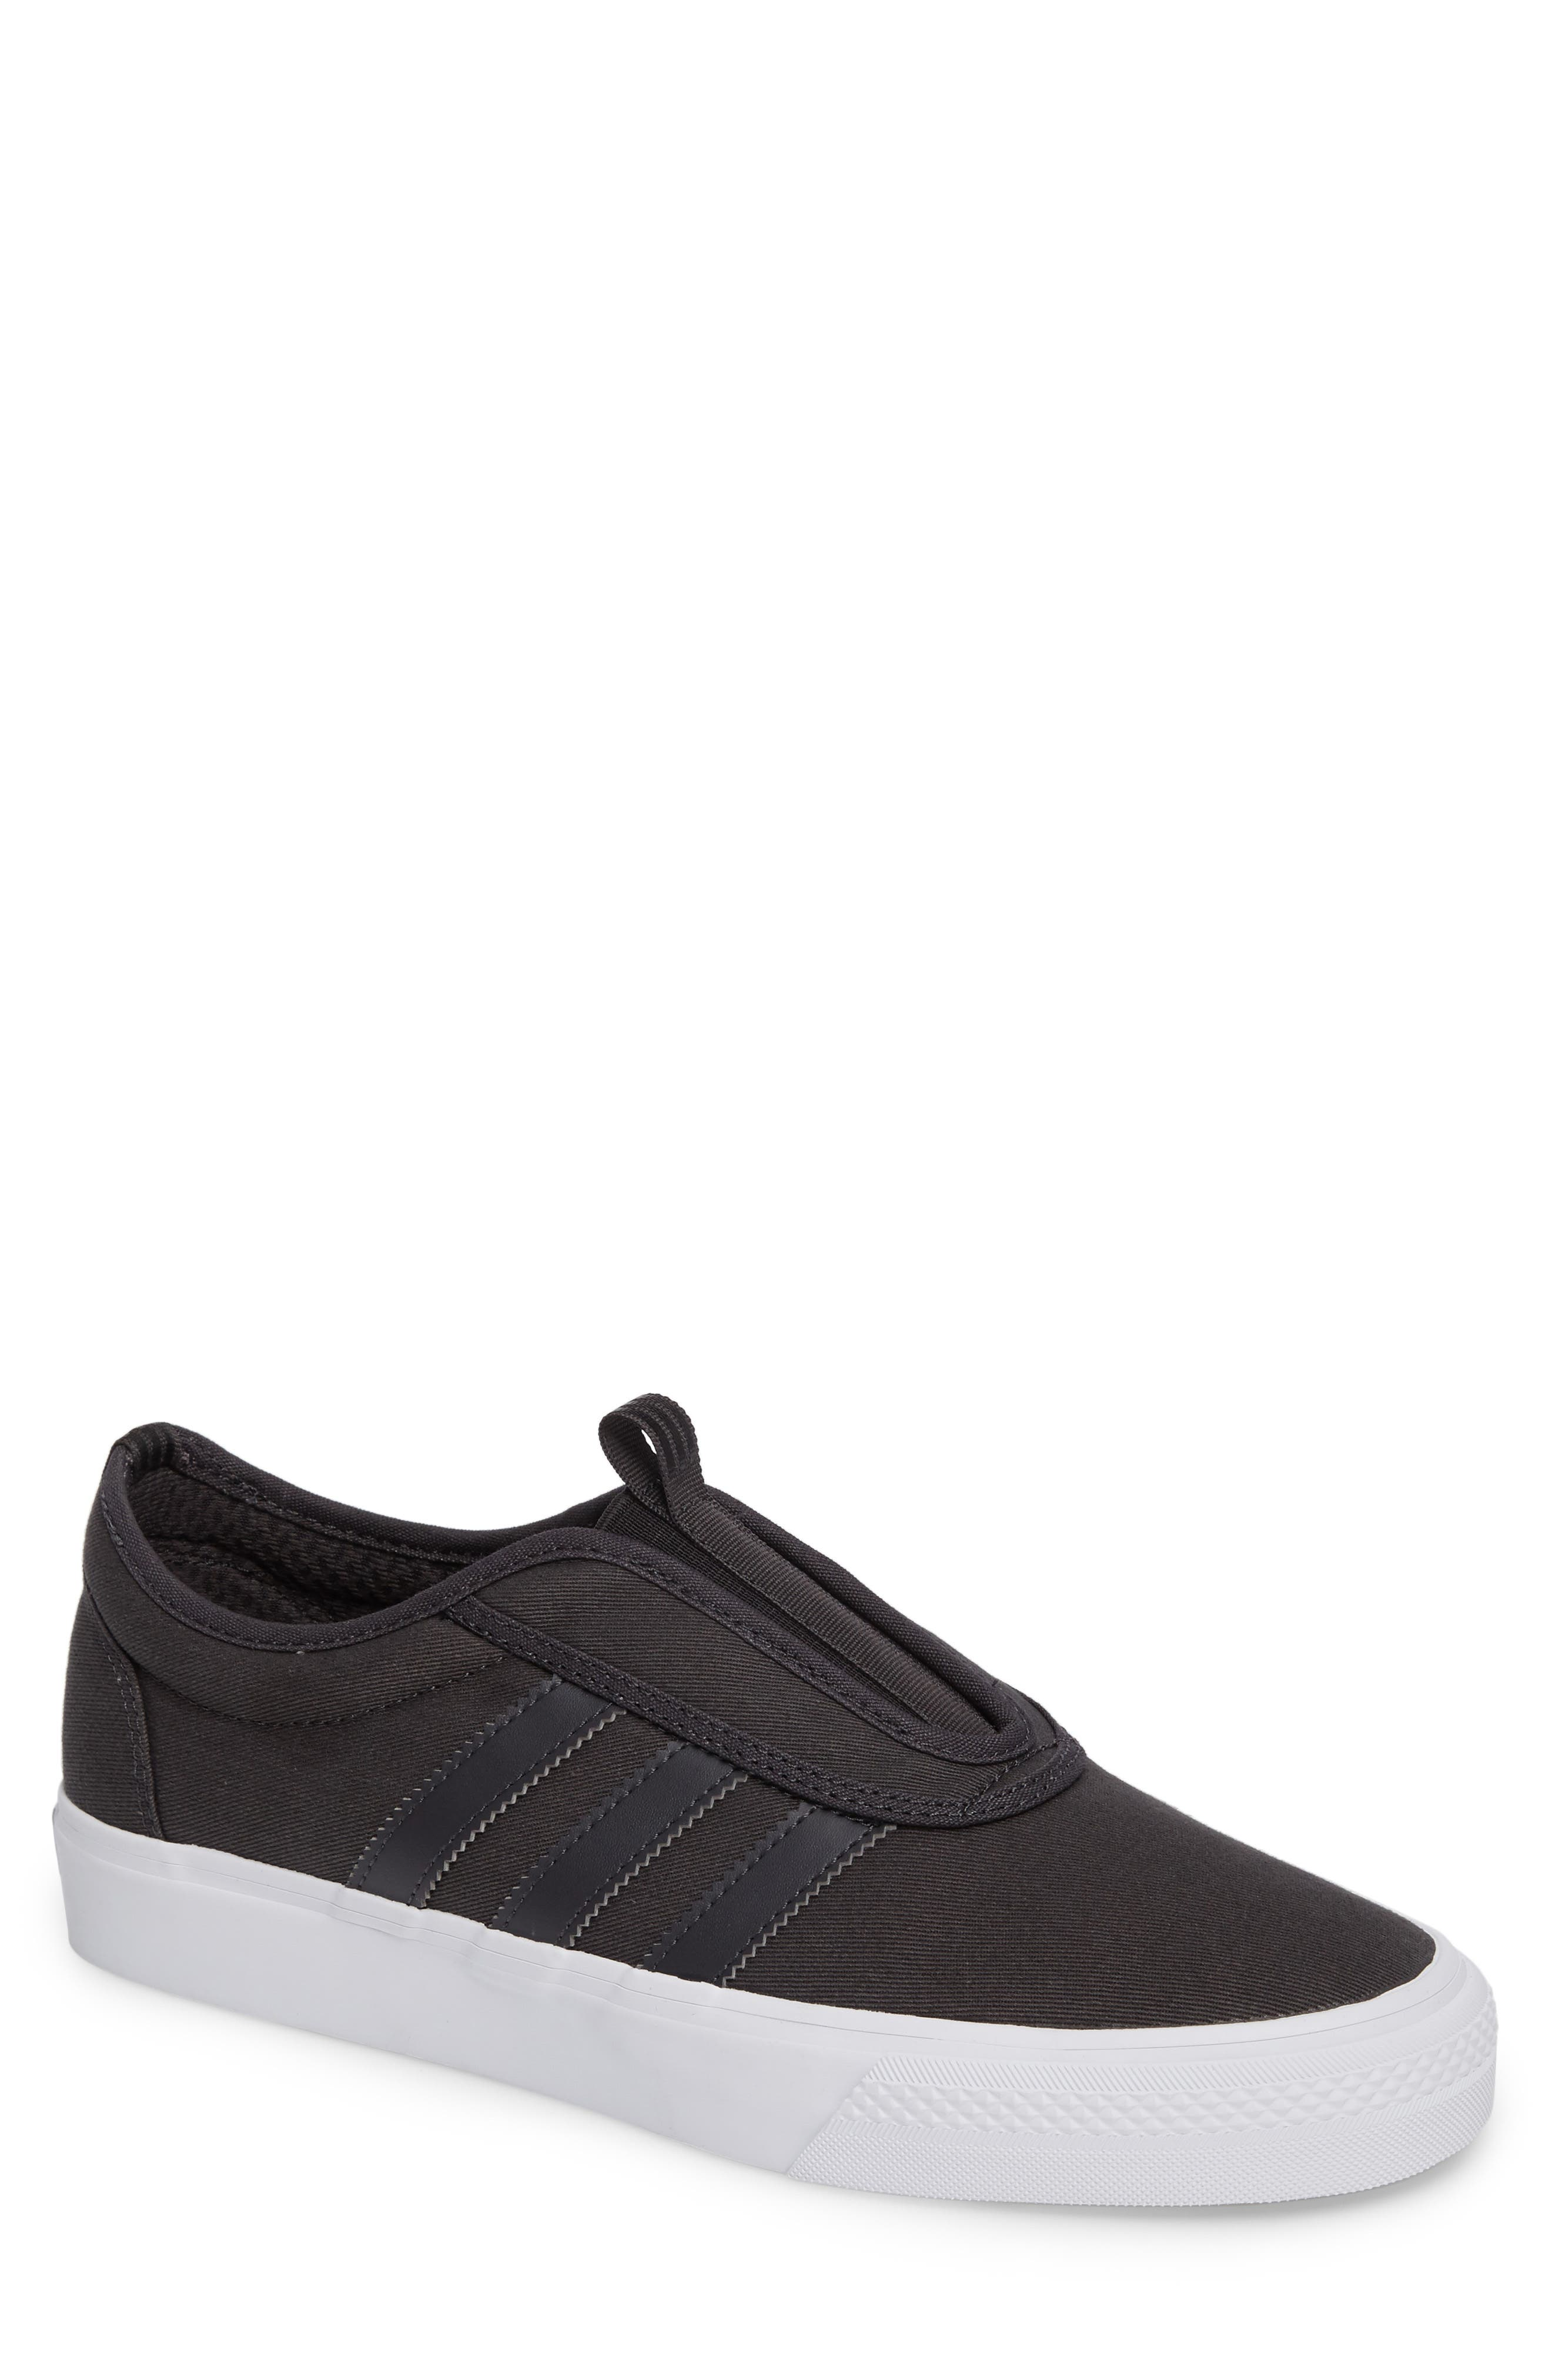 adidas Adi-Ease Kung-Fu Slip-On Skateboarding Sneaker (Men)